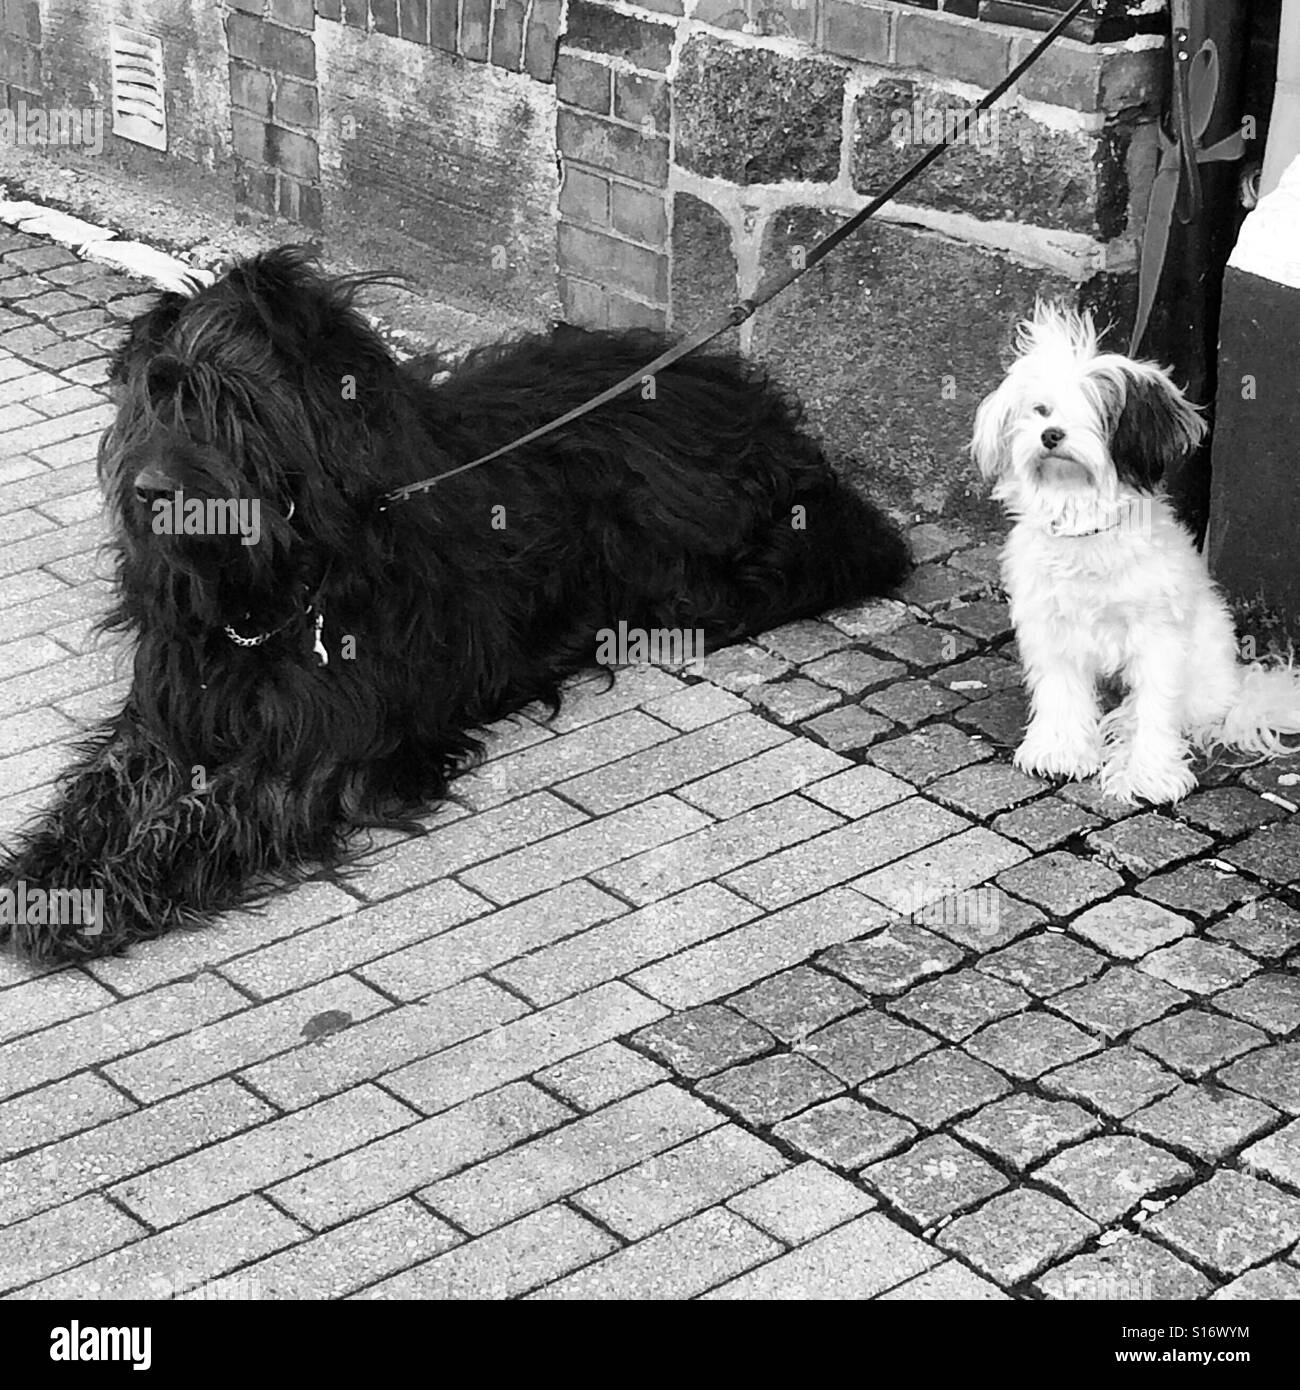 Two dogs waiting in front of a hairdresser, it seems they got one haircut themselves - Stock Image